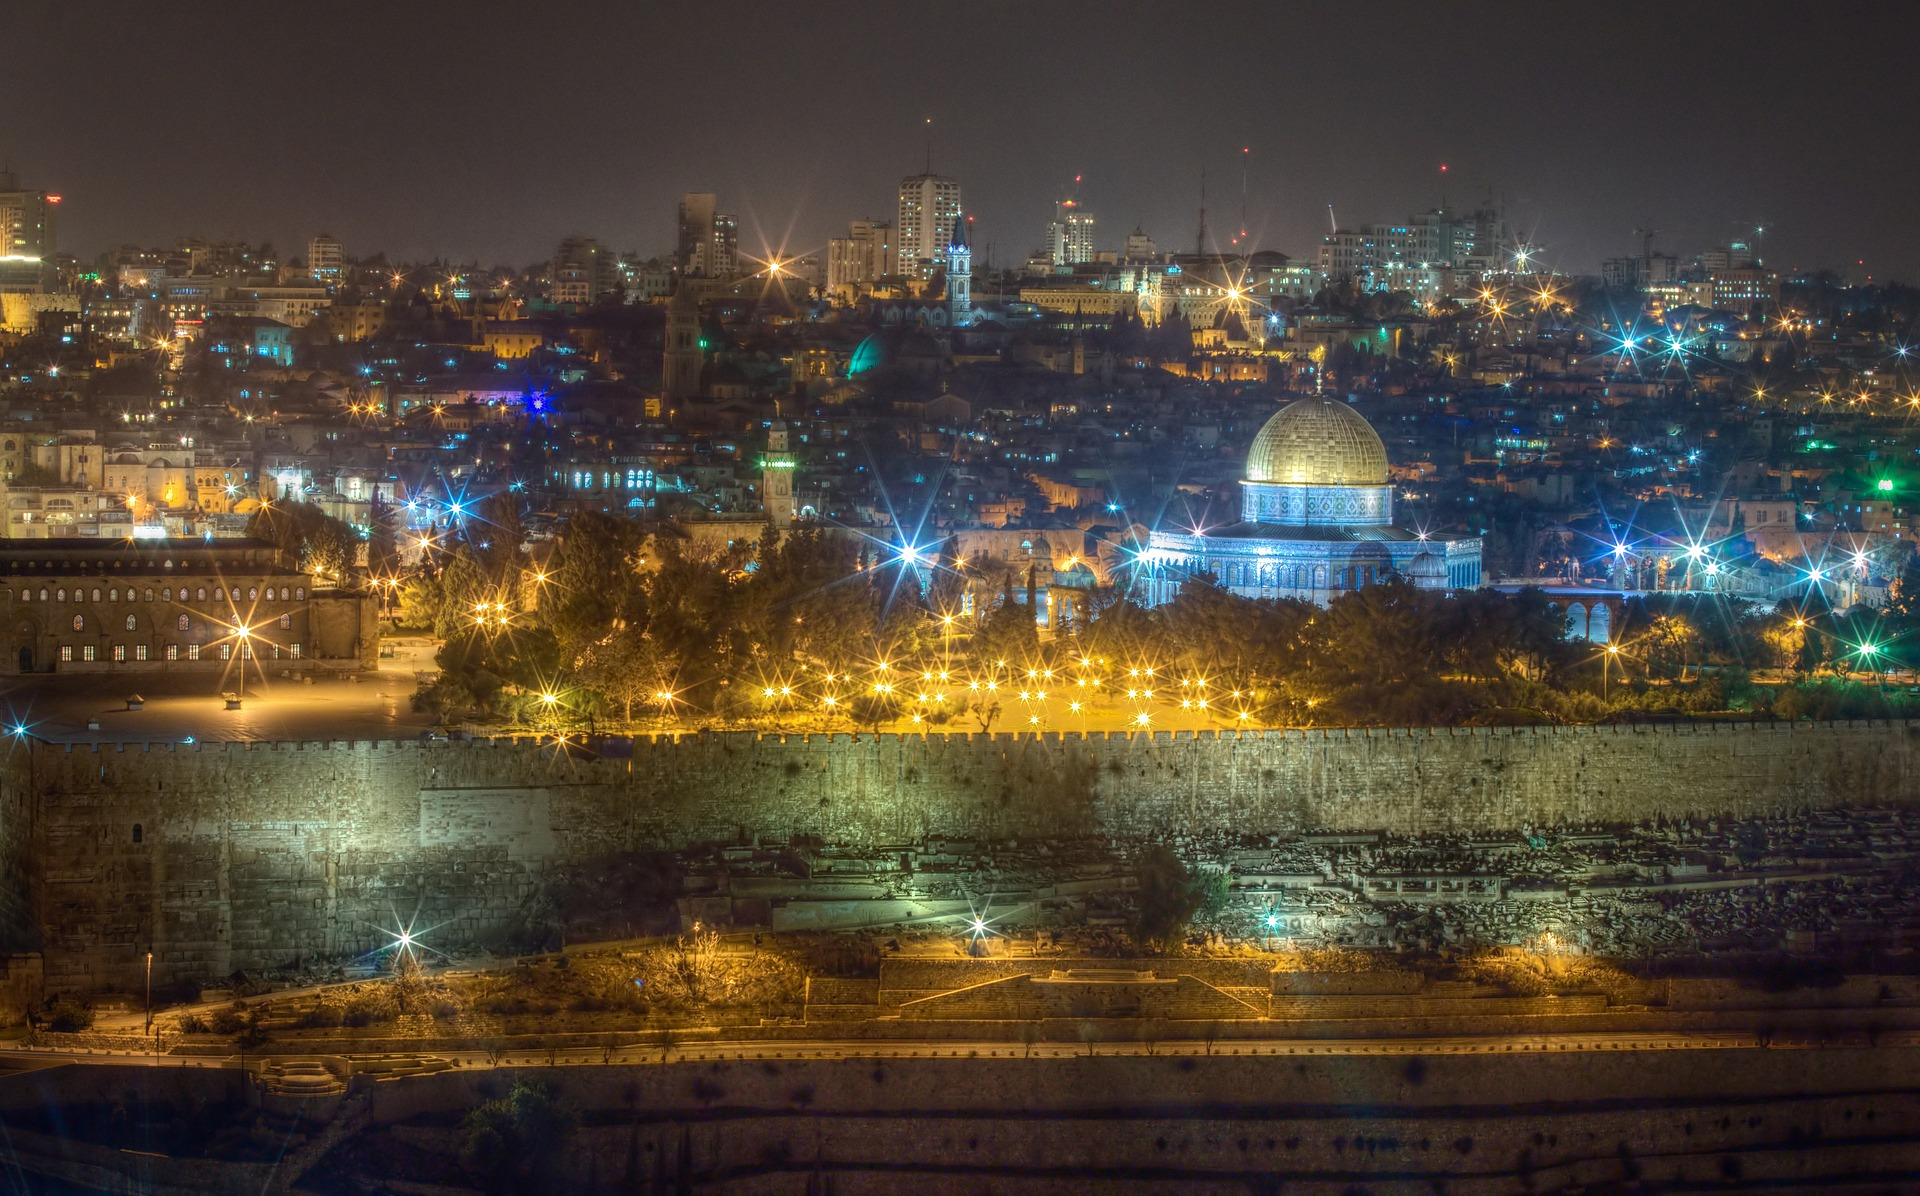 Jerusalem, Israel at night